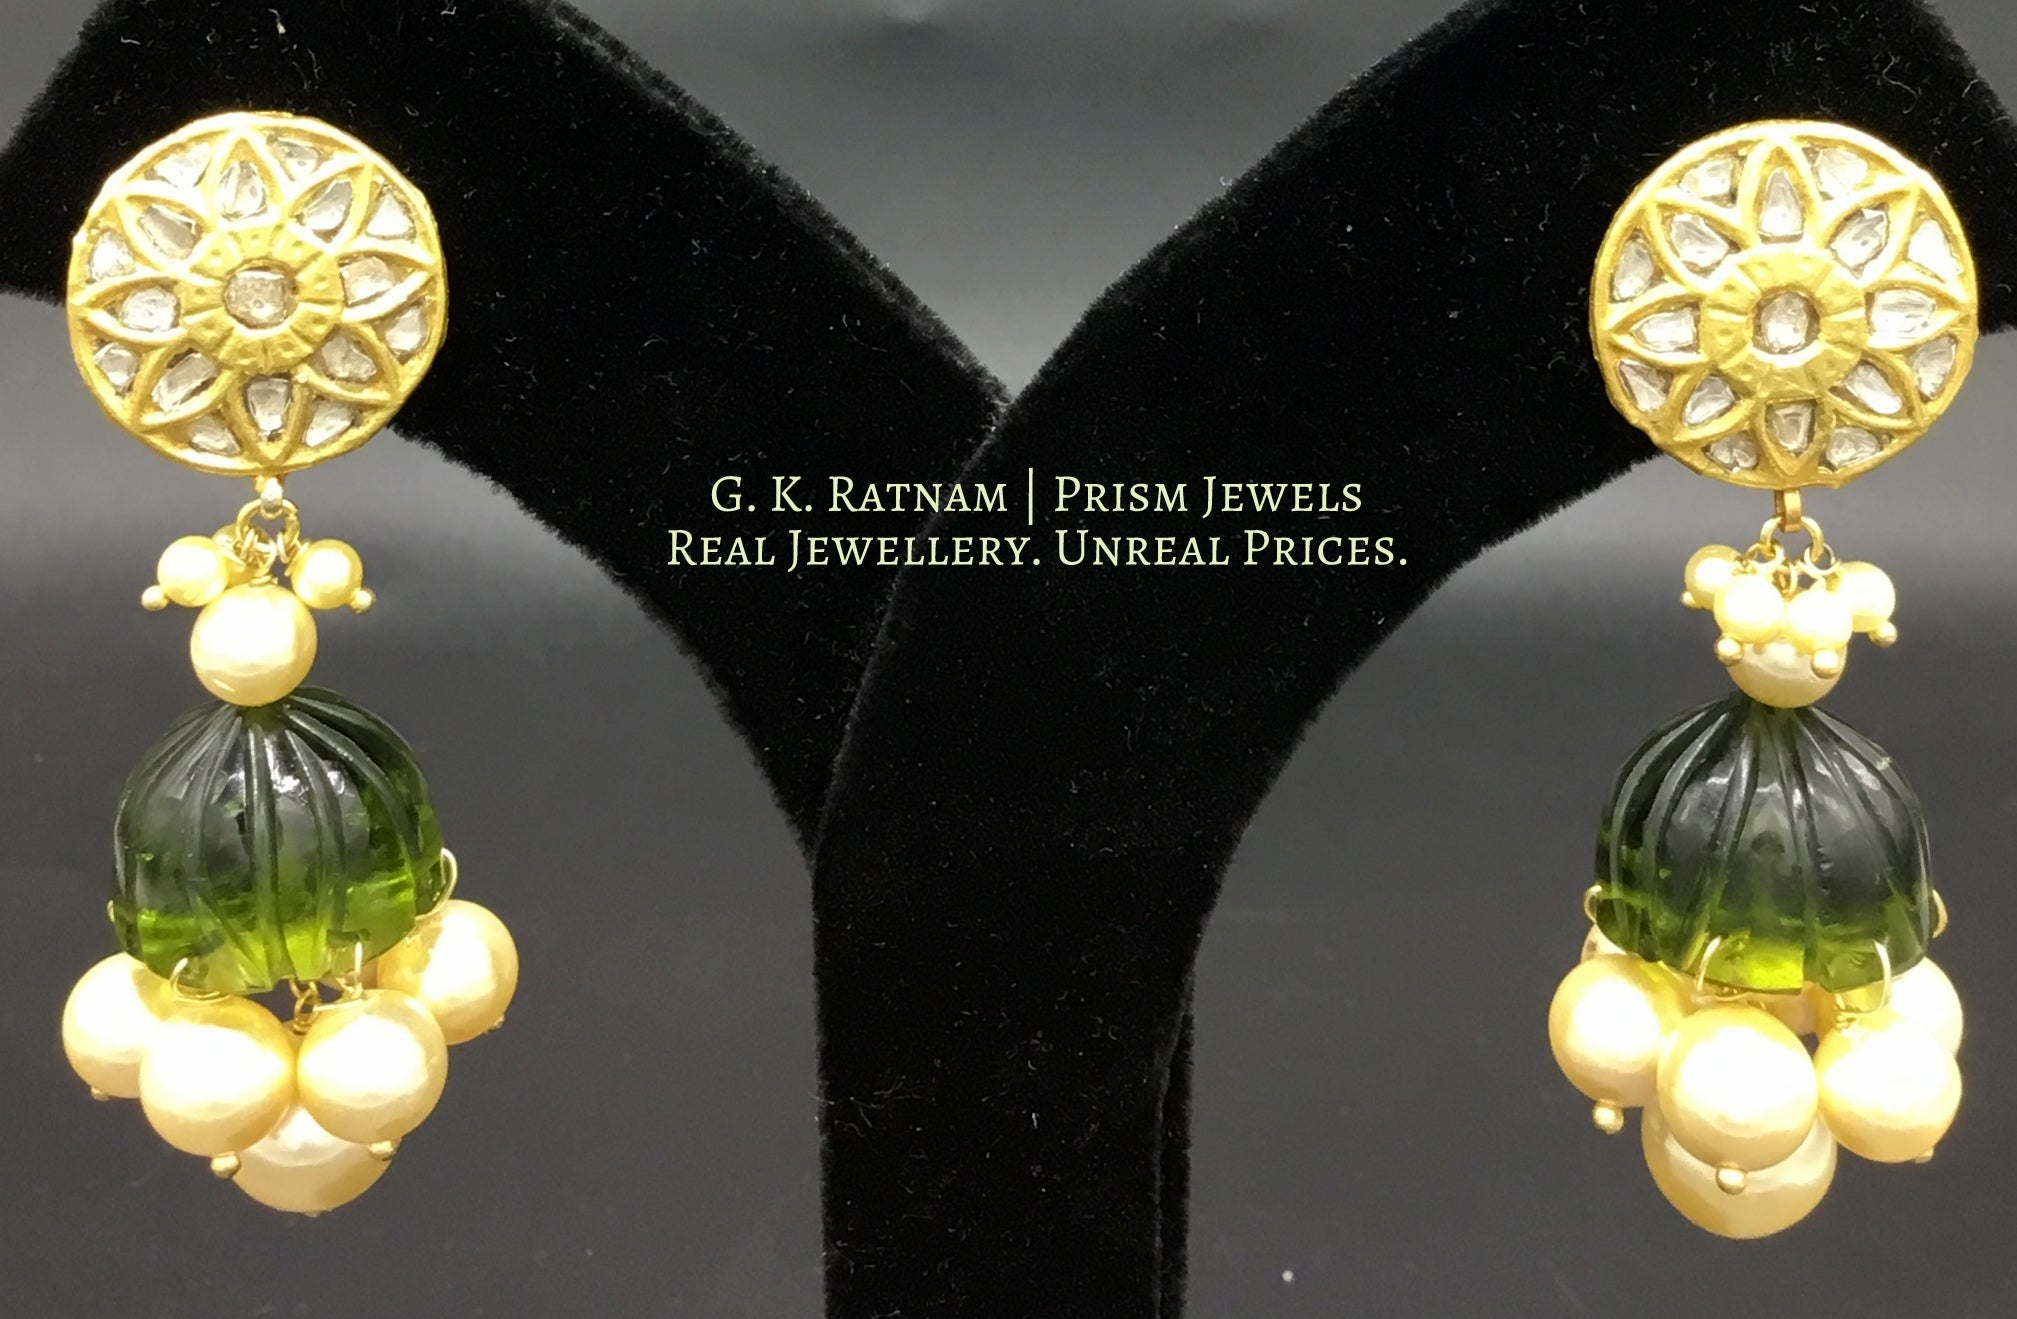 23k Gold and Diamond Polki Jhumki Earring Pair with peridot-green glass jhumkas - gold diamond polki kundan meena jadau jewellery